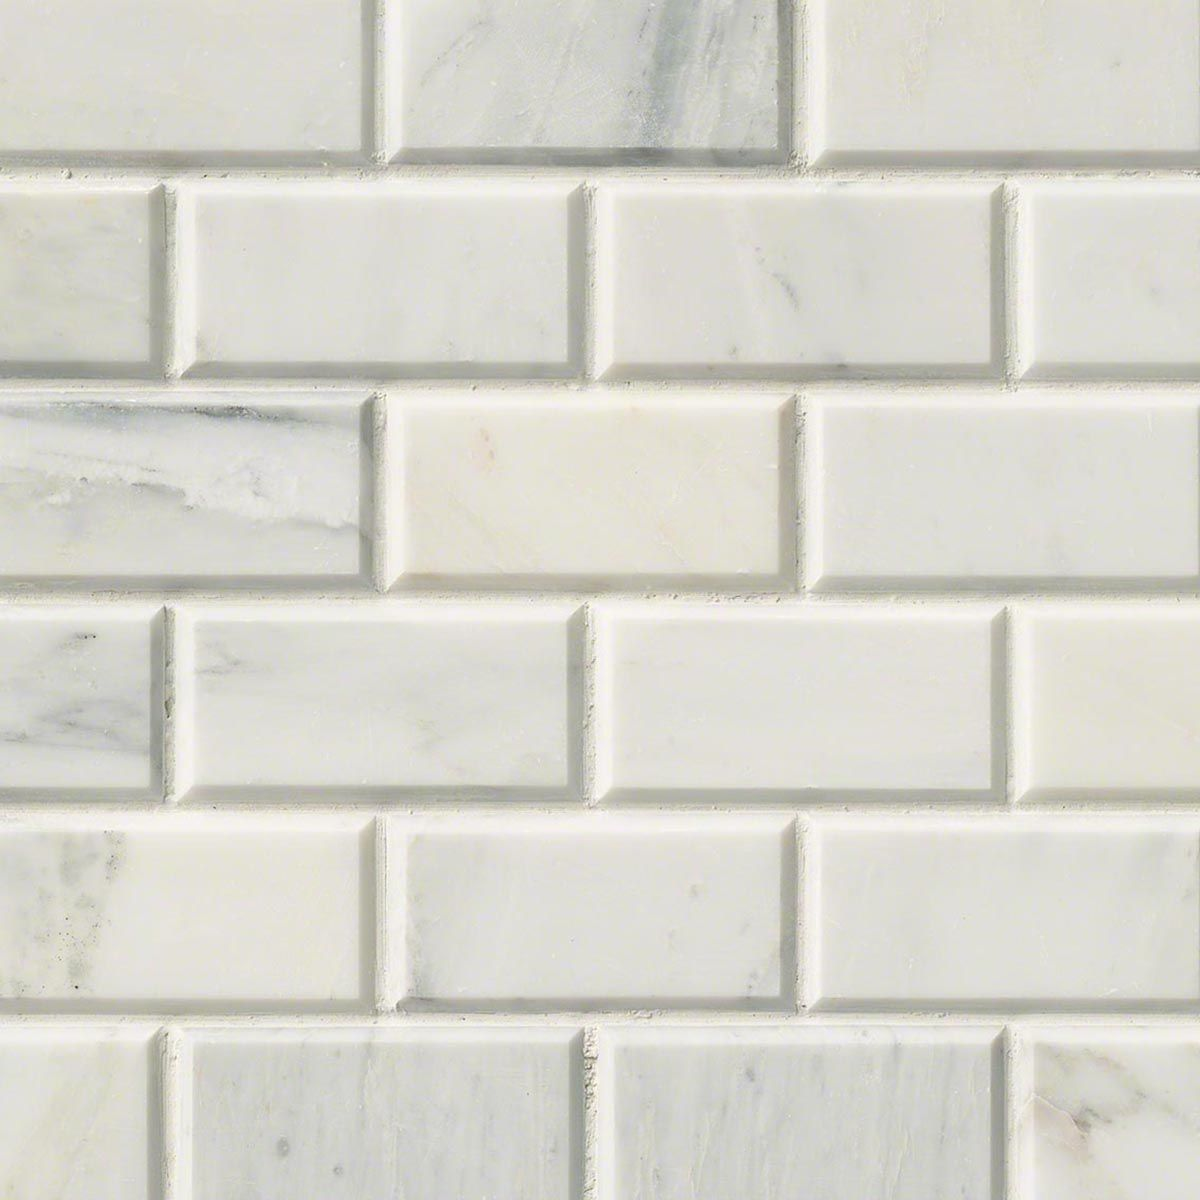 Arabescato cararra 2x4 honed and beveled st helena pinterest arabescato cararra 2x4 honed and beveled subway tileswall dailygadgetfo Choice Image